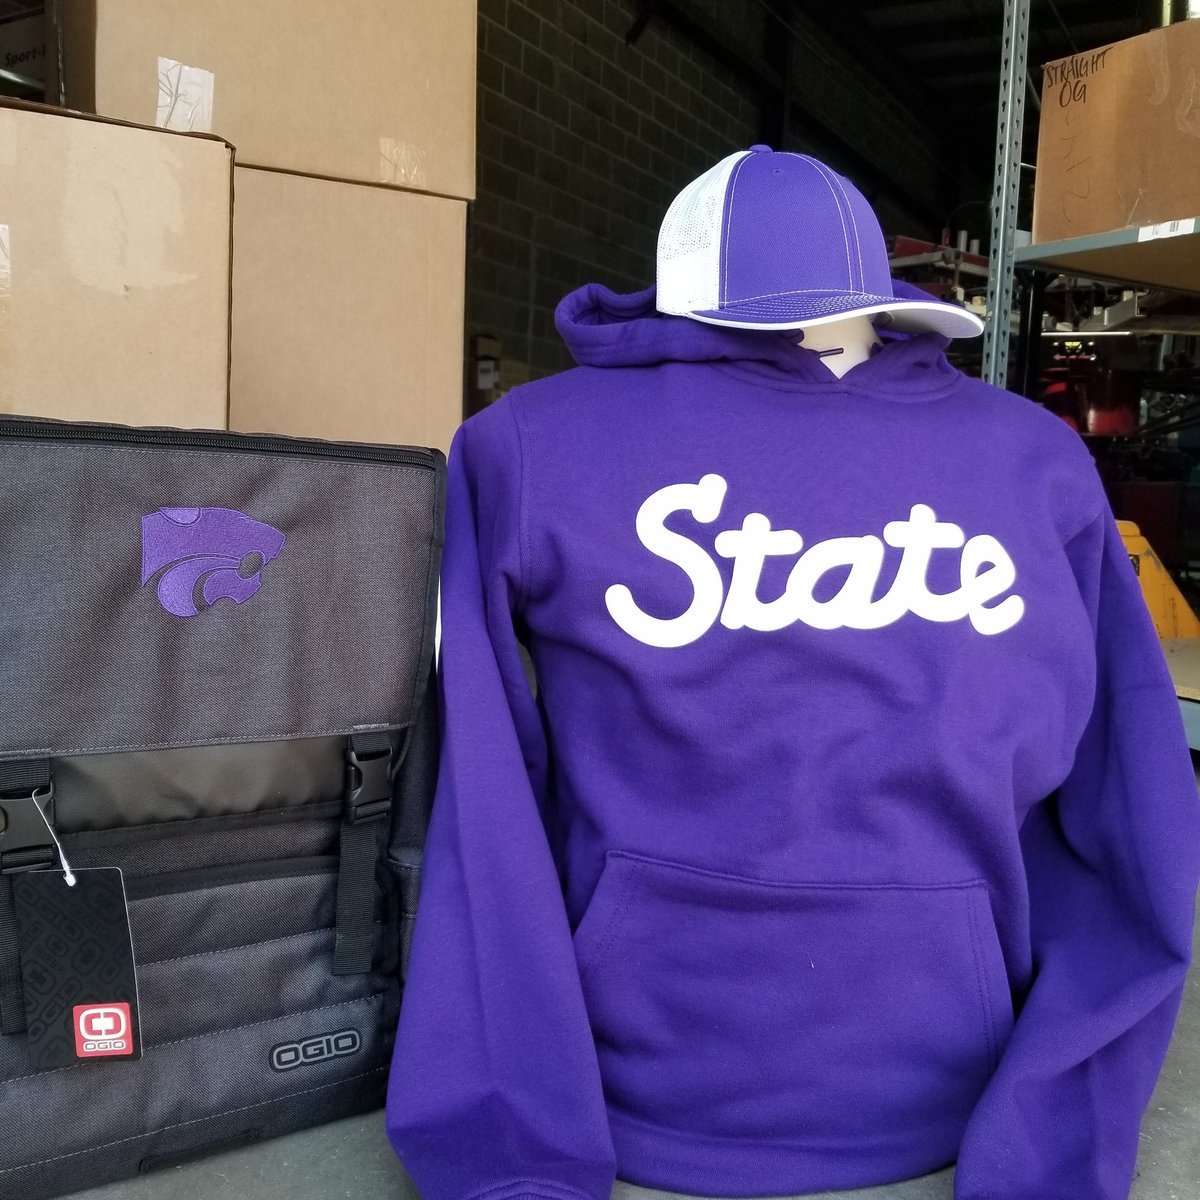 Ok Cat Fans, you asked for it!  STATE hoodie GIVEAWAY 🕰  Predict the score and win! @KStateFB at @CycloneFB 3pm on Fox 📺  - Closest TWO predictions win - Like/share & game score to enter - Follow me  - First come first serve (if a tie)  Good luck! Go Cats!  @RellecApparel